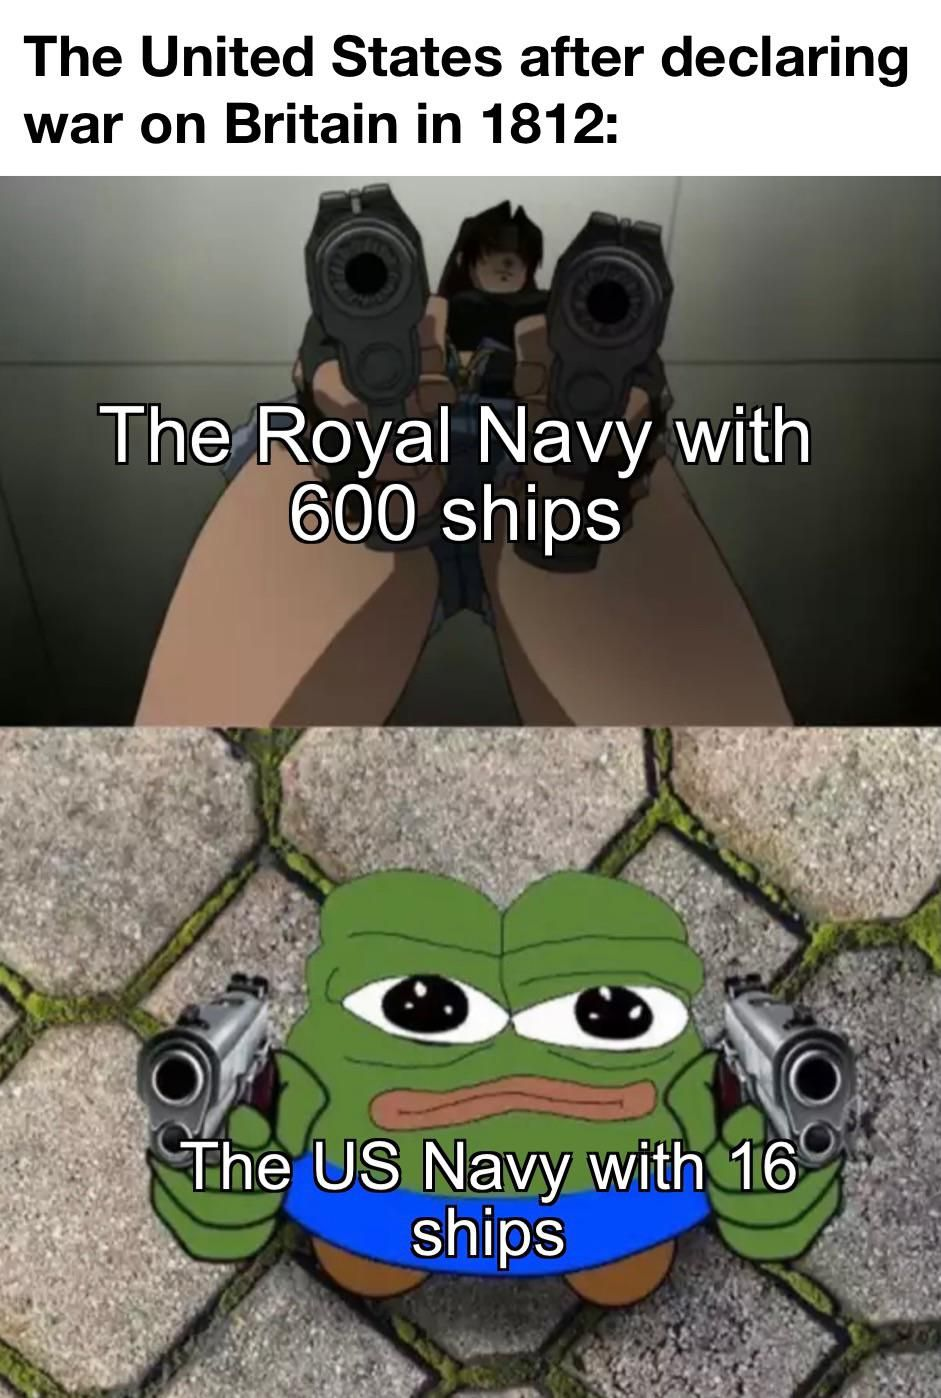 In hindsight it's amazing the US Navy performed as well as it did